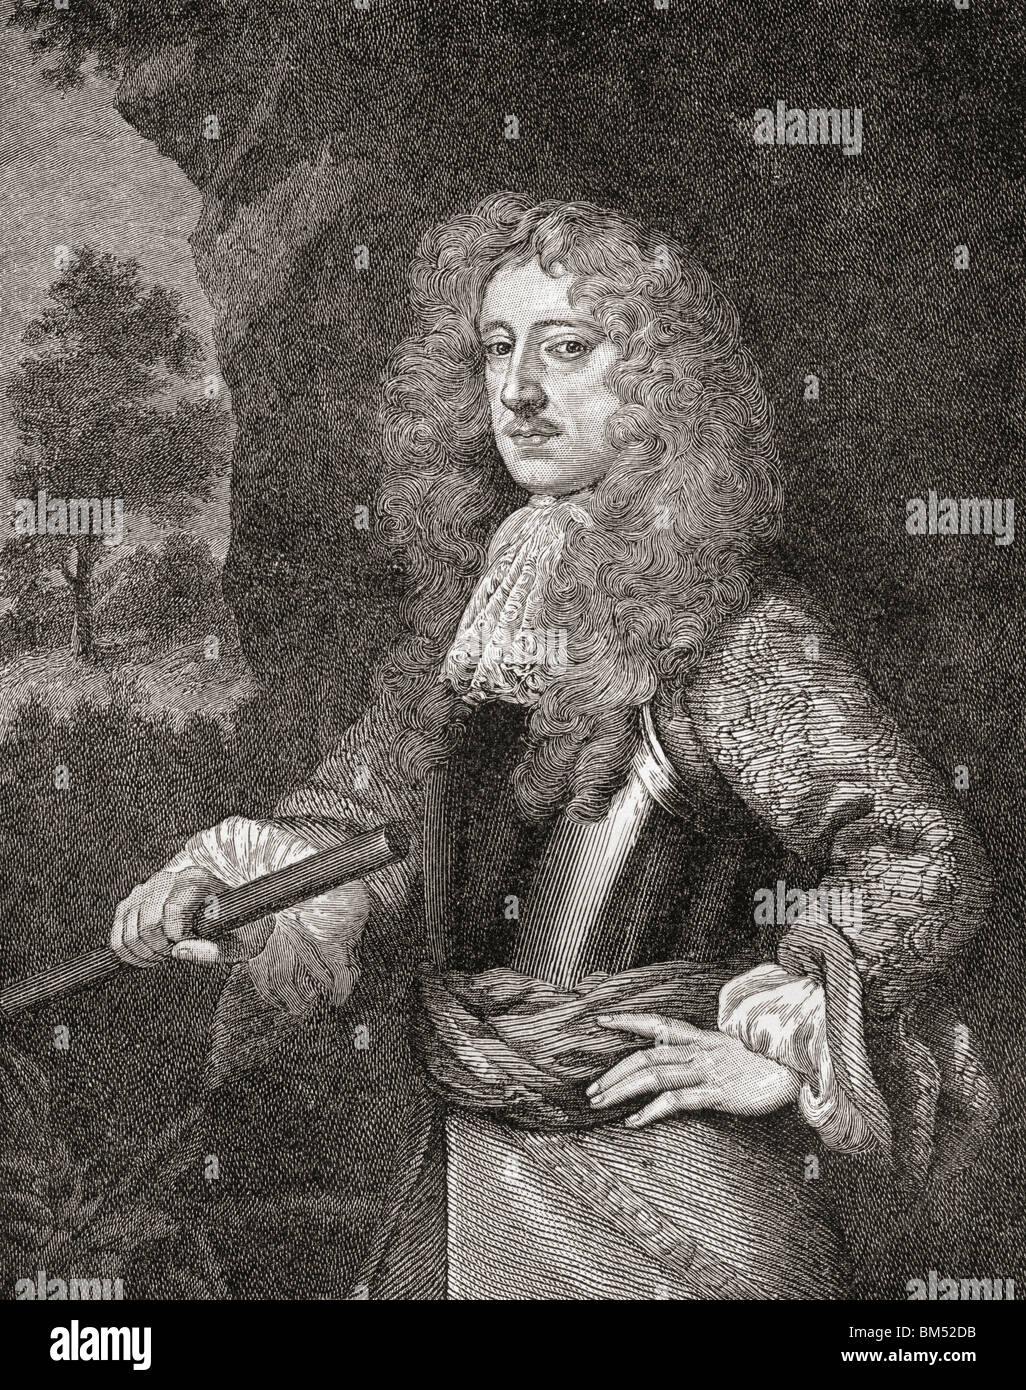 Anthony Ashley Cooper, 1st Earl of Shaftesbury, 1621 to 1683. English Whig politician. - Stock Image